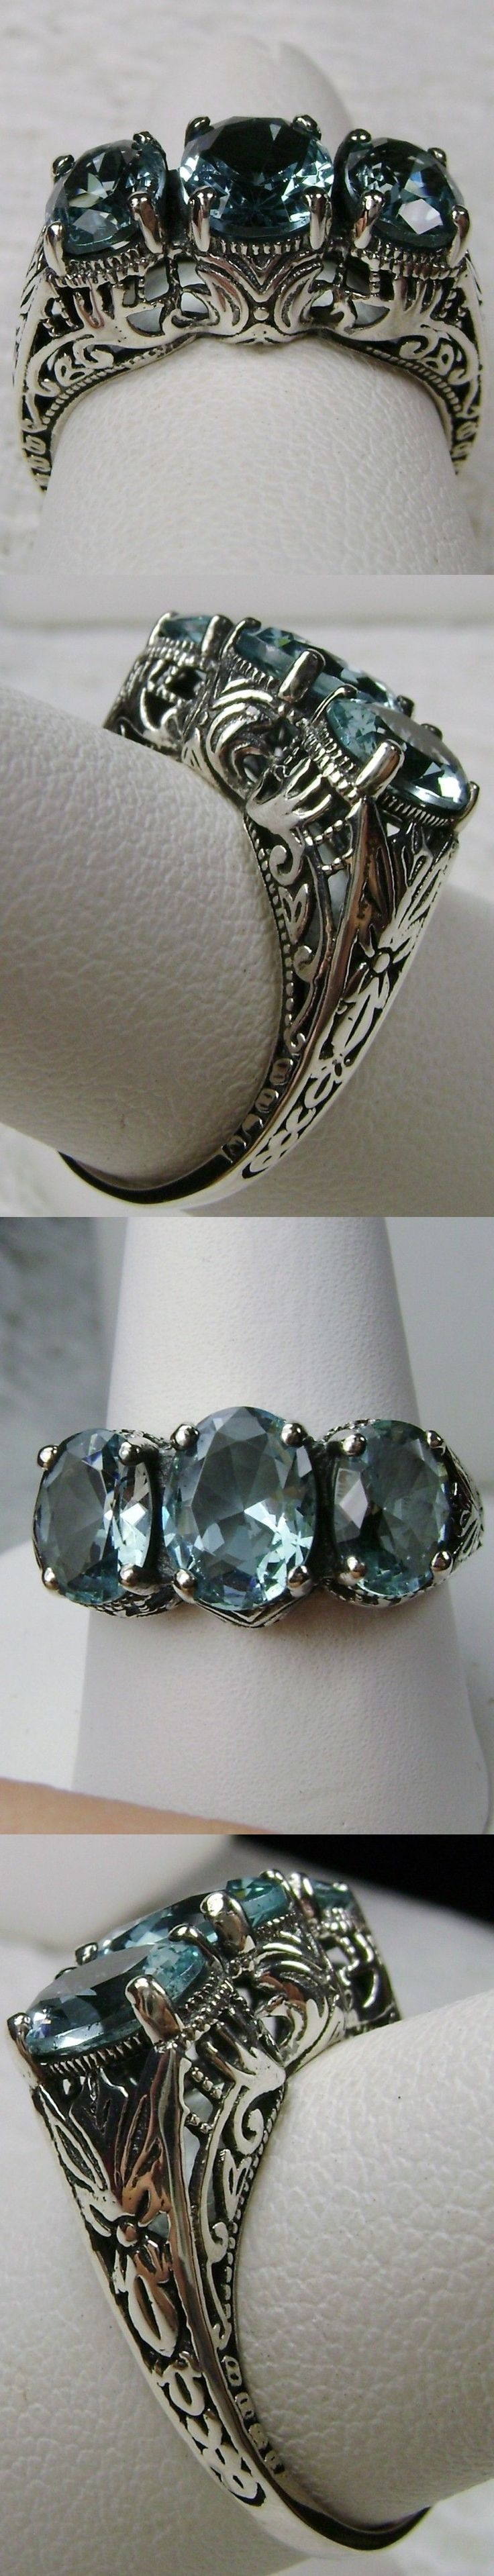 Rings 52603: *Aquamarine* Sterling Silver Filigree Edwardian Victorian Ring [Made To Order} -> BUY IT NOW ONLY: $35 on eBay!